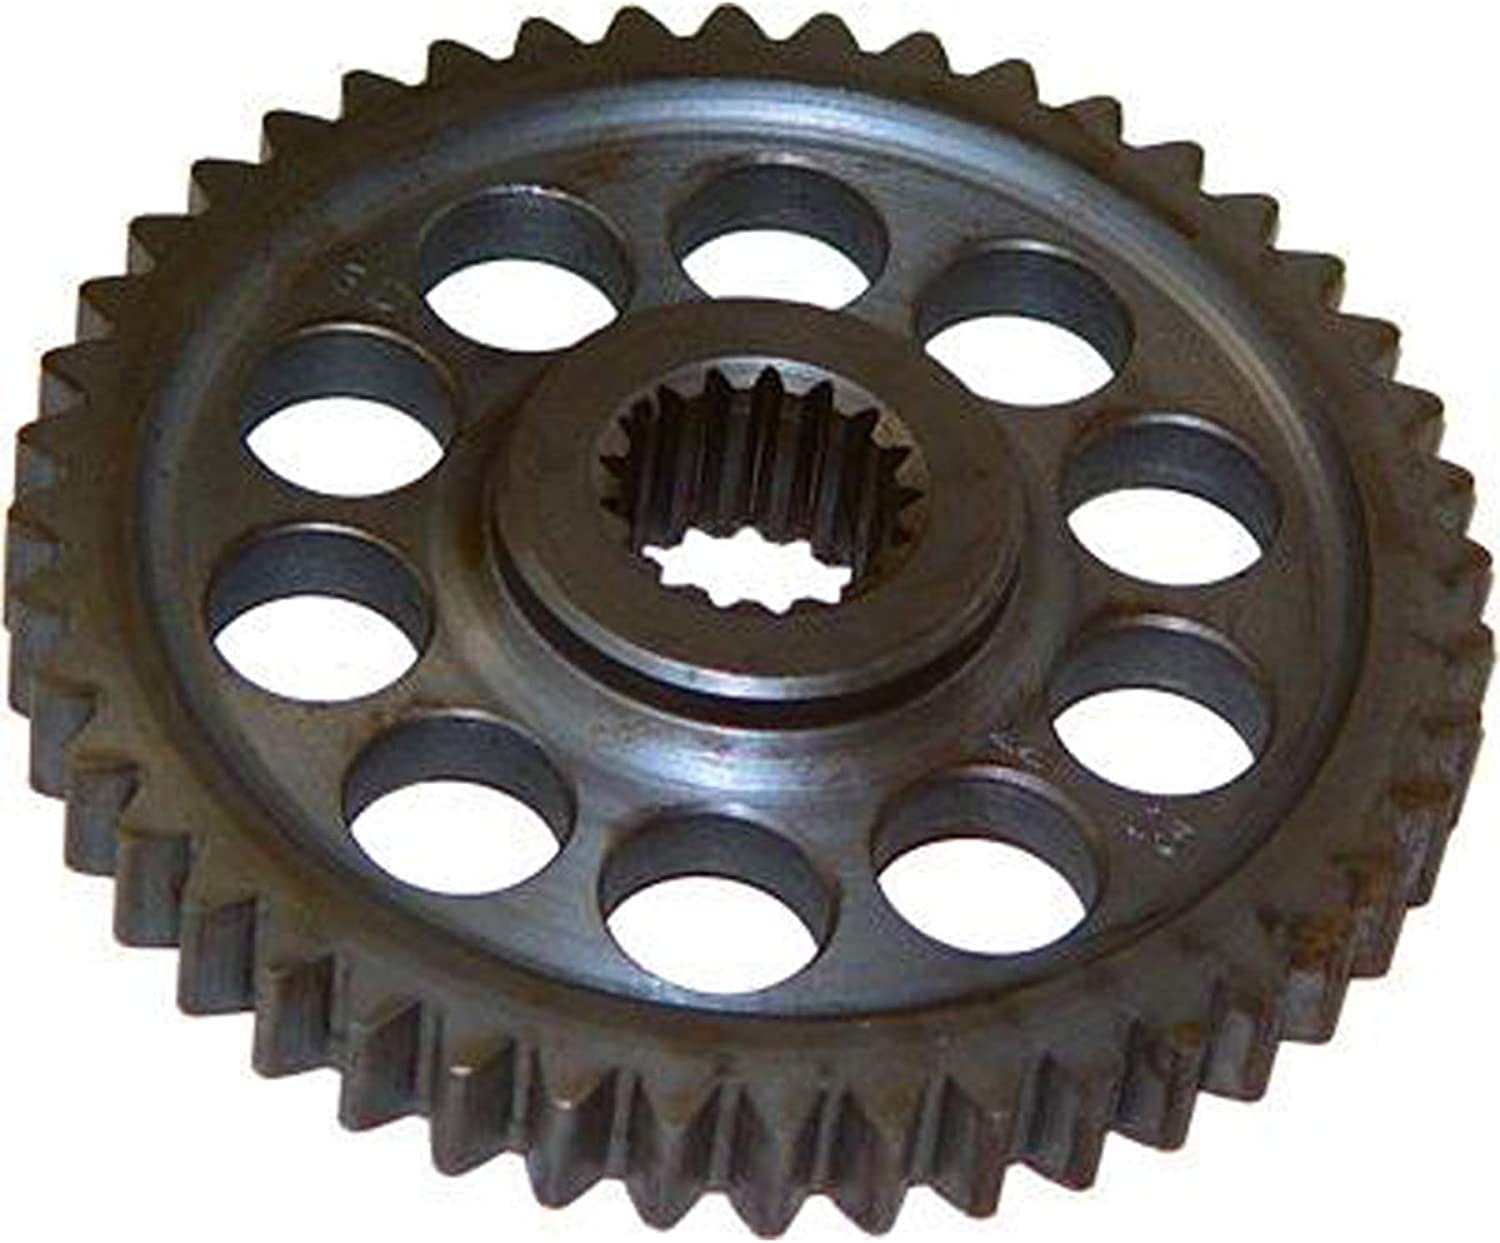 Hyvo Bottom Gear - 40T Sprocket 1999 Internal Fits Polaris 15T All items in New Free Shipping the store